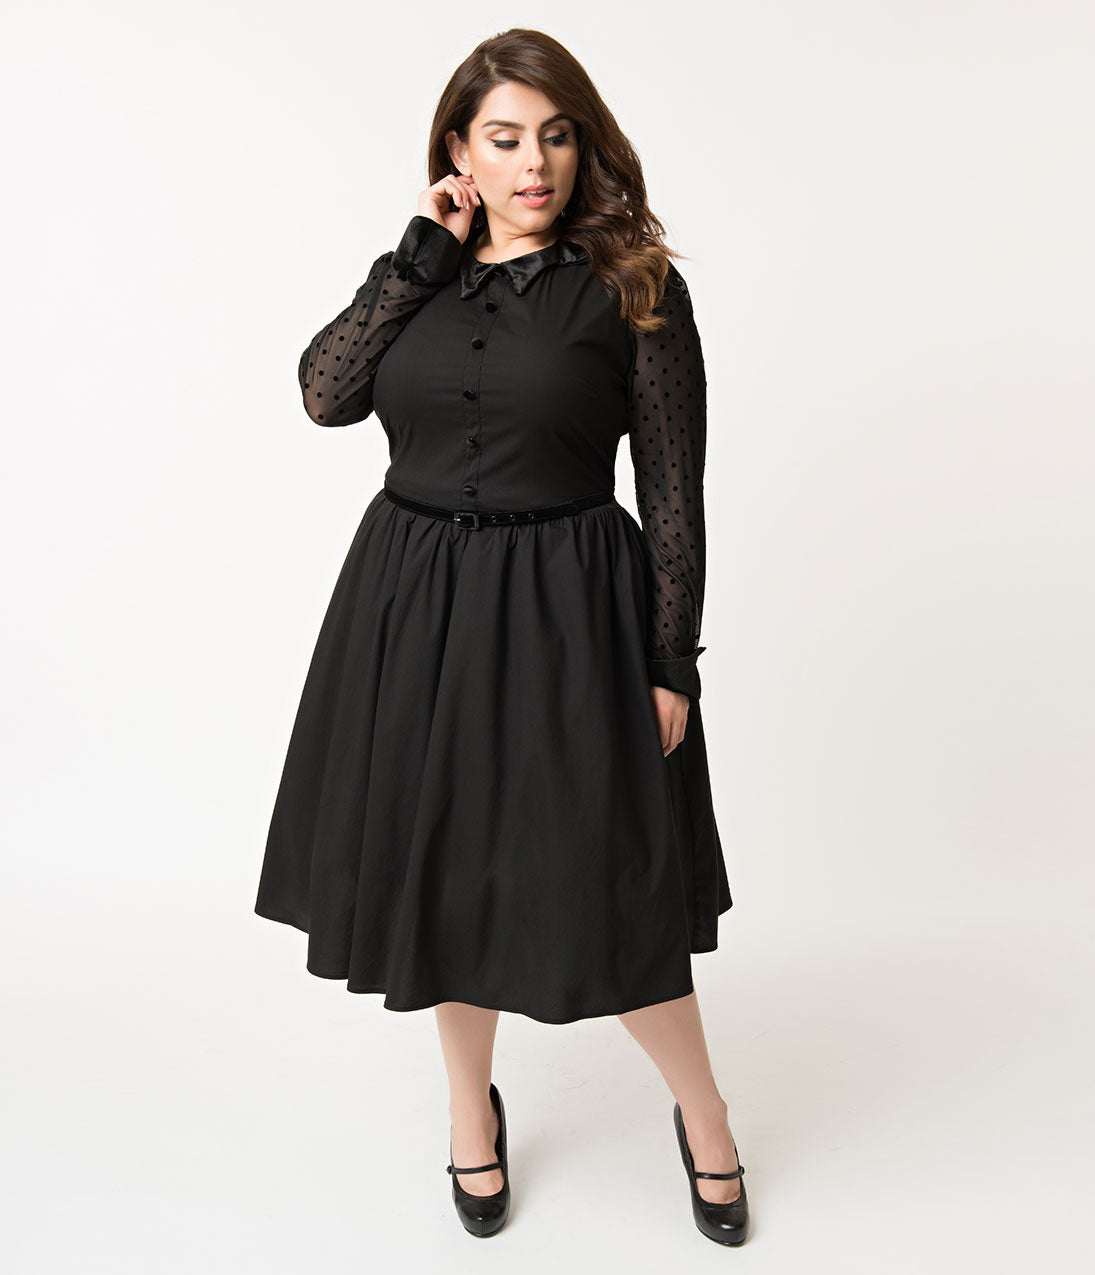 1950s Plus Size Dresses, Clothing and Costumes Folter Plus Size Black Cotton  Mesh Long Sleeve Nocturnal Swing Dress $74.00 AT vintagedancer.com